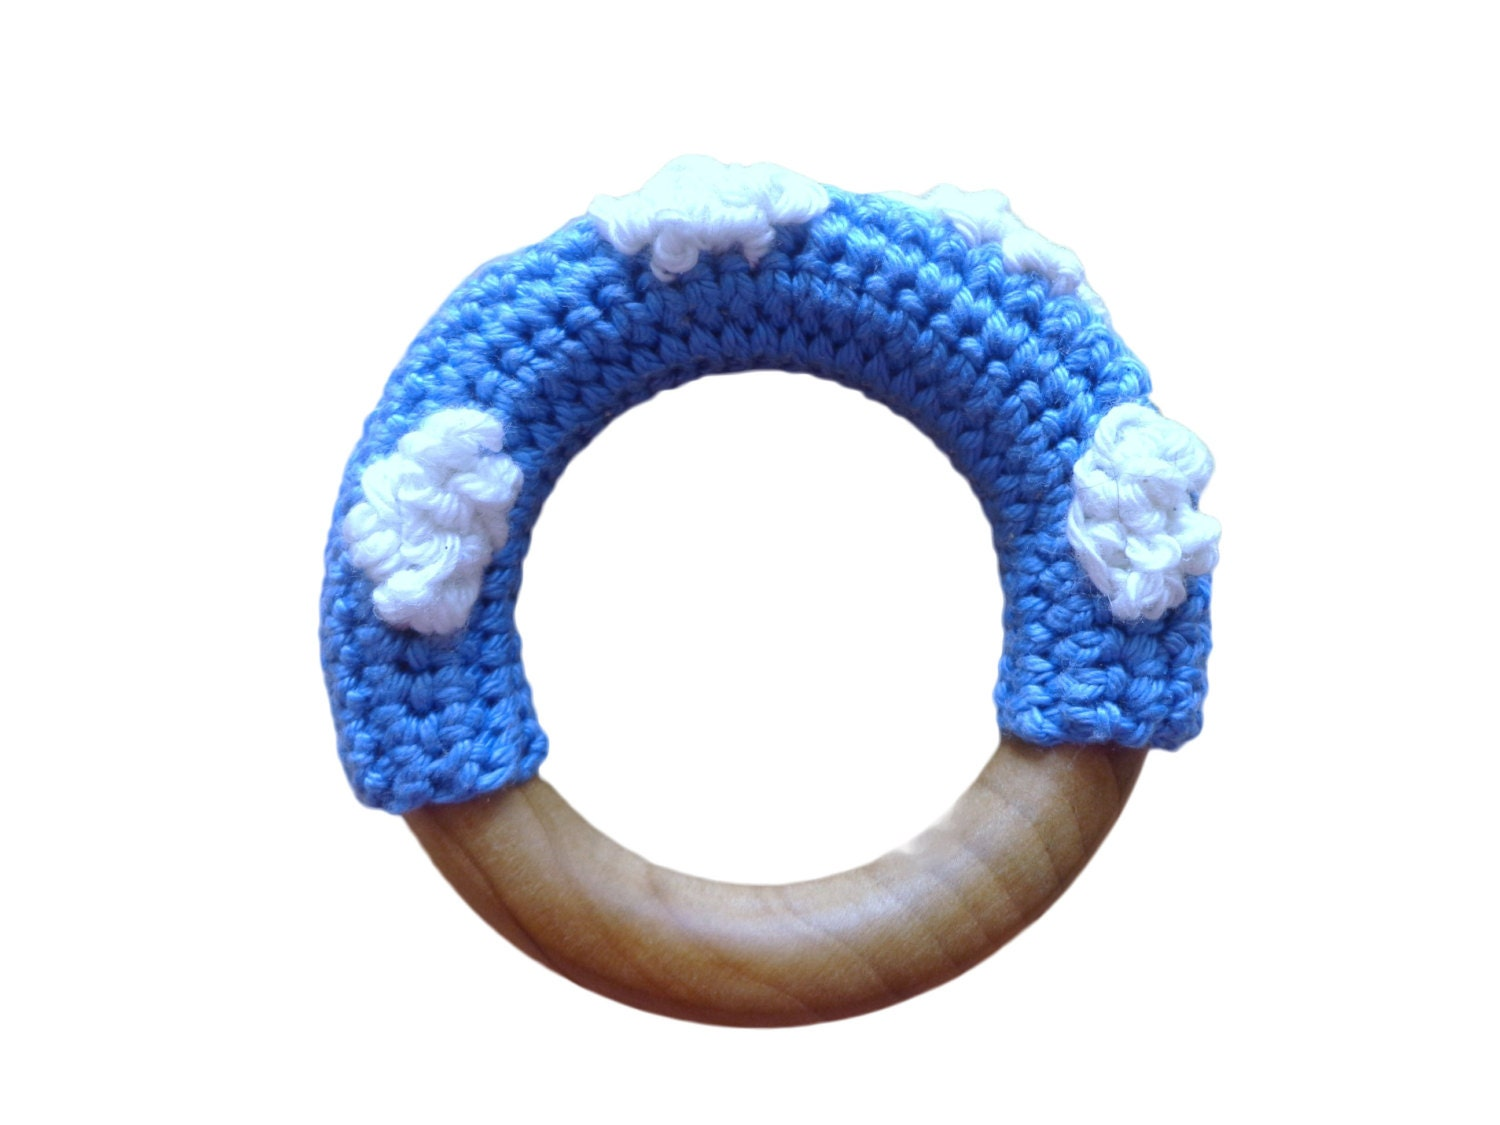 CLOUD DESIGN Crochet covered natural wooden baby teething ring  teether